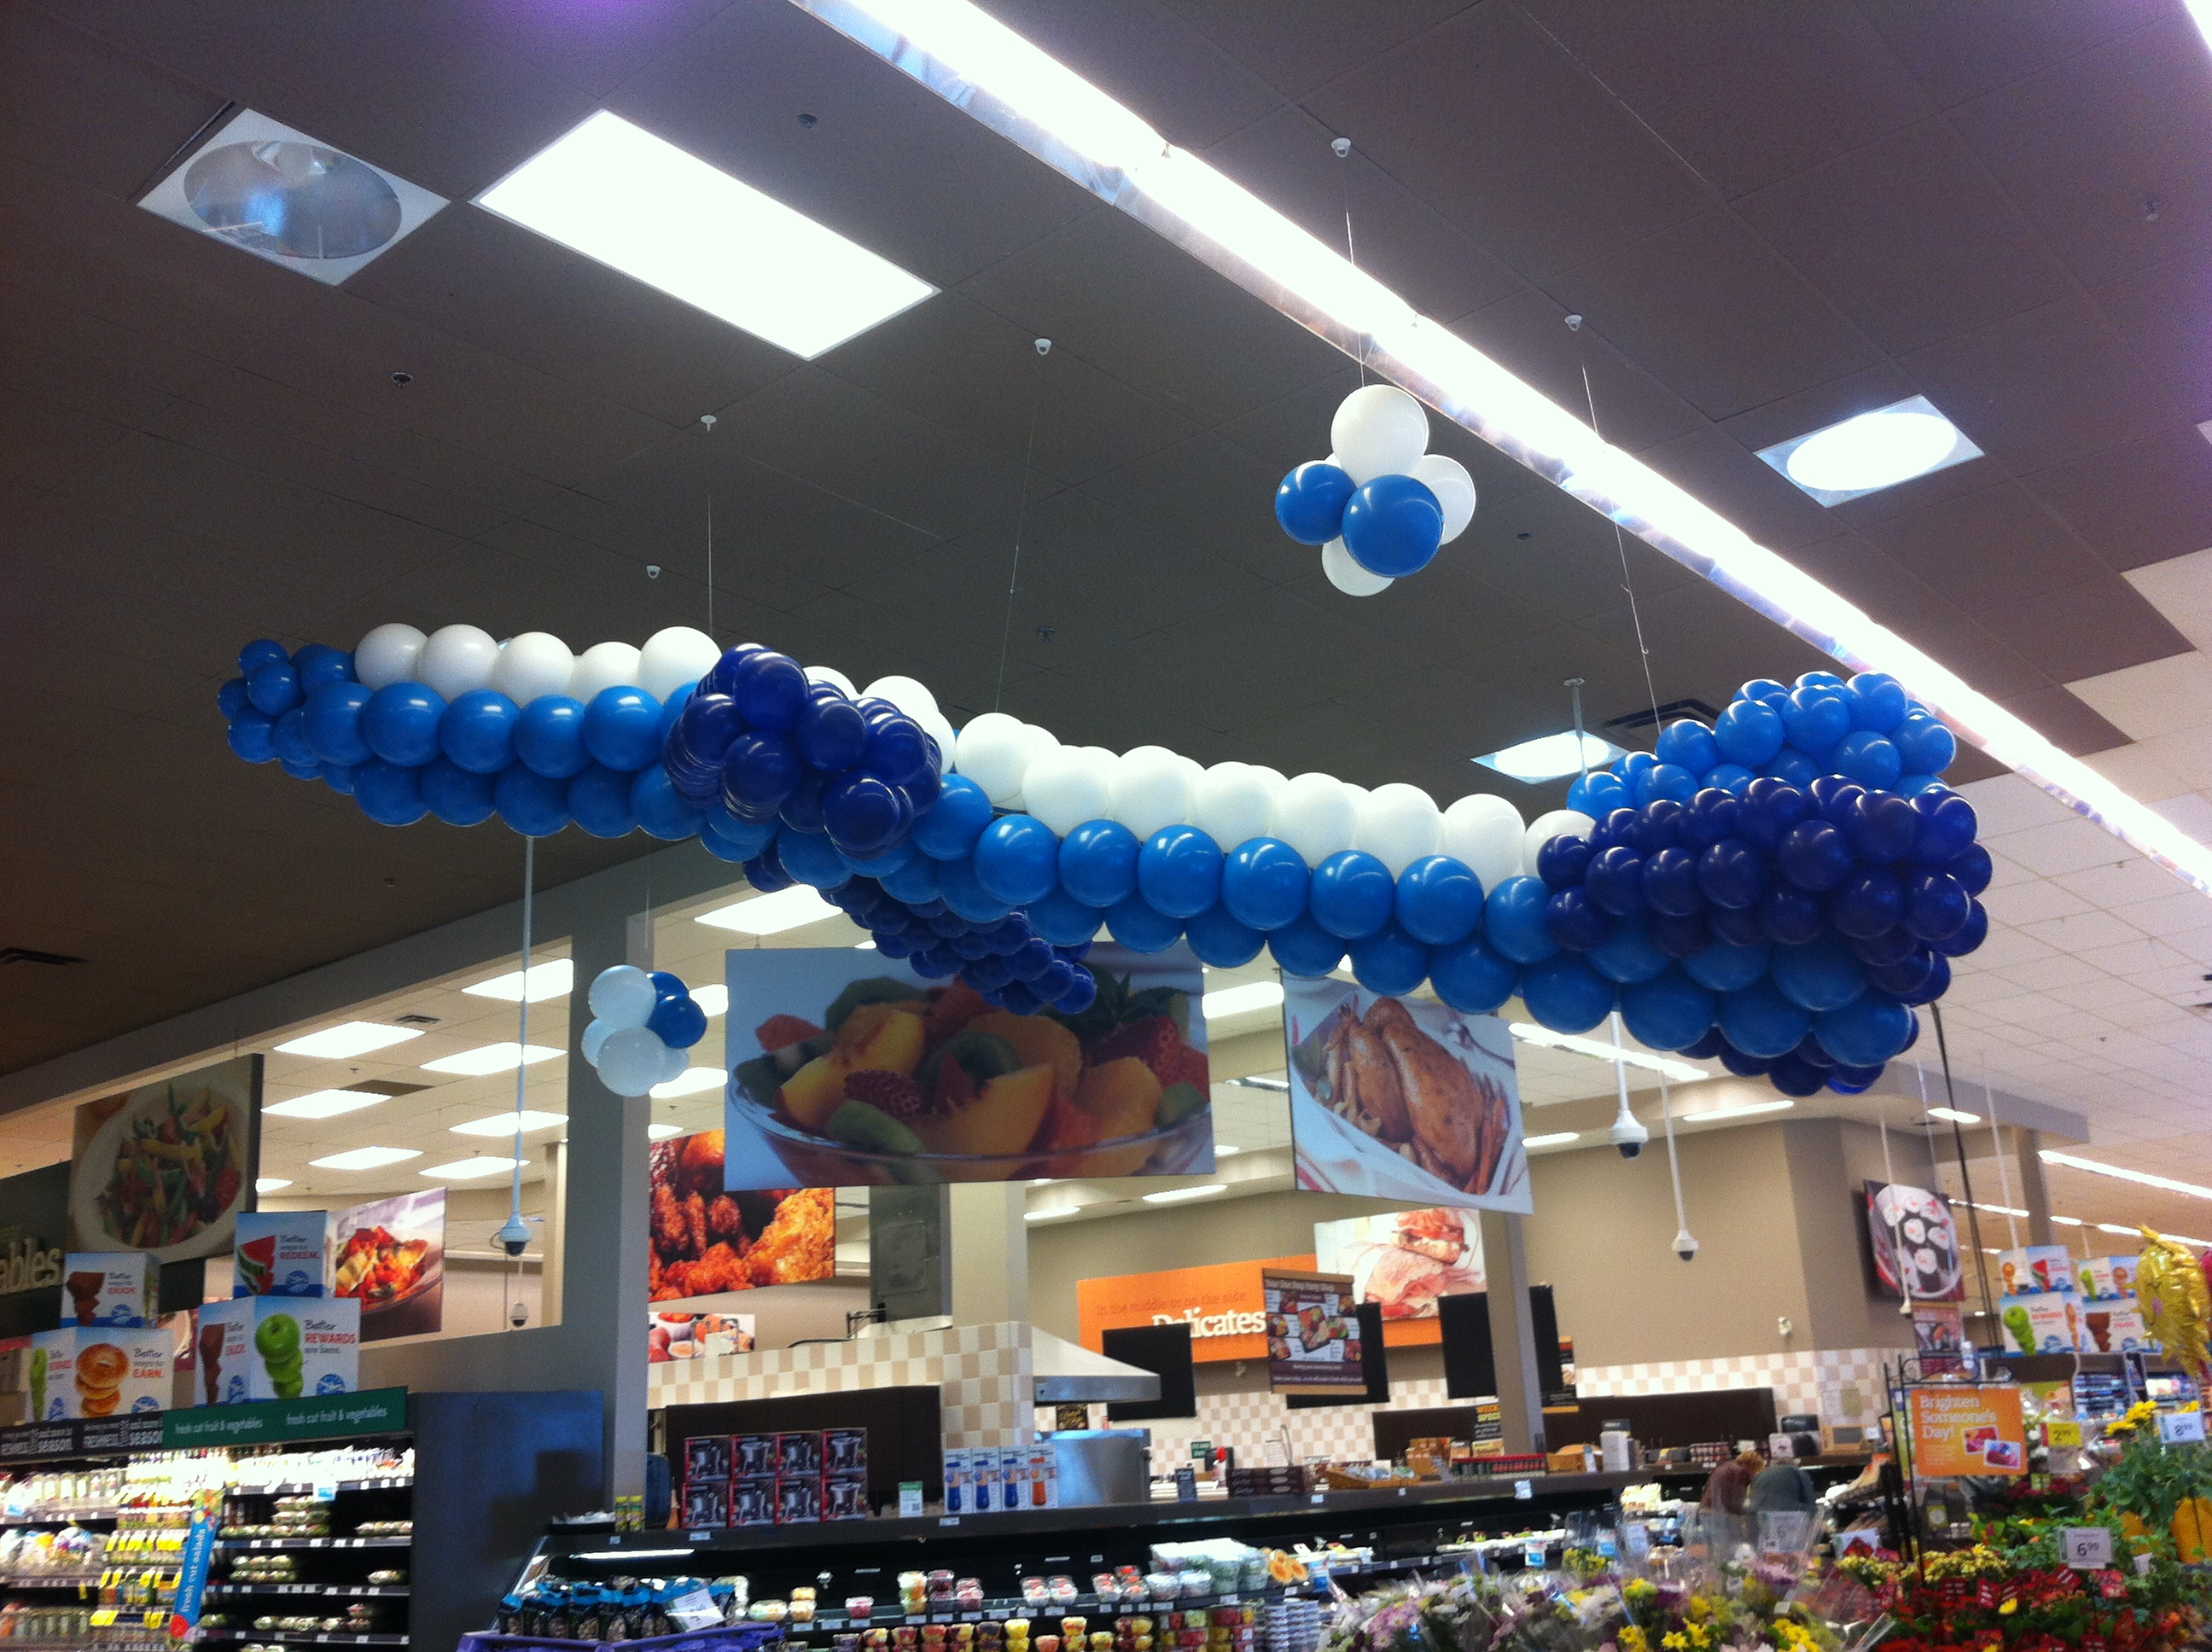 Jumbo Jet Balloon Sculpture